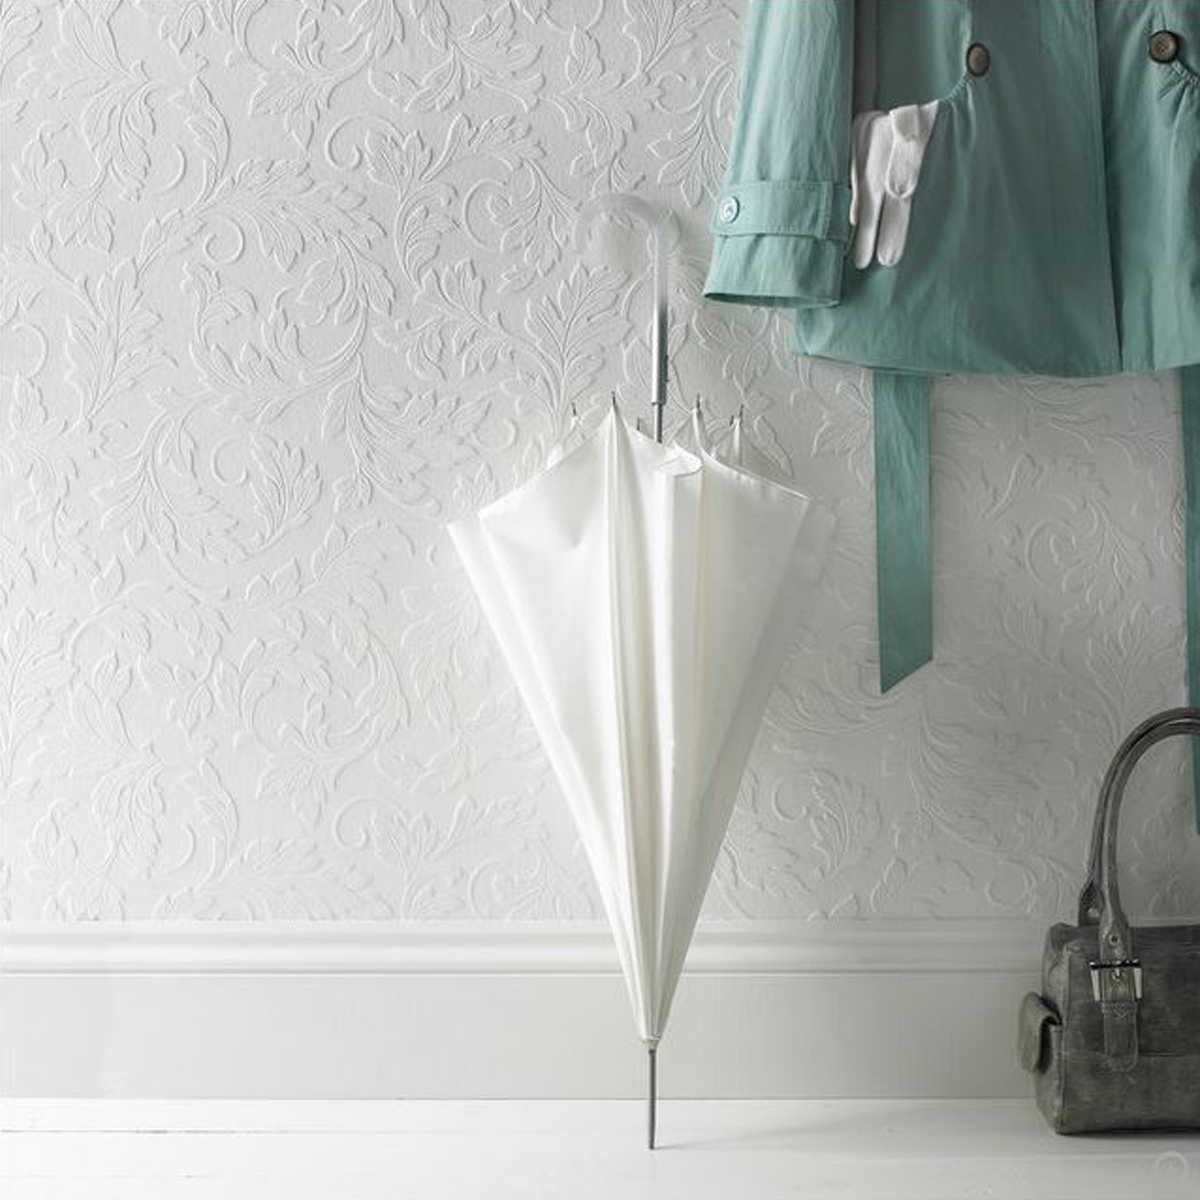 White wallpaper with traditional scrolling leaf design photo